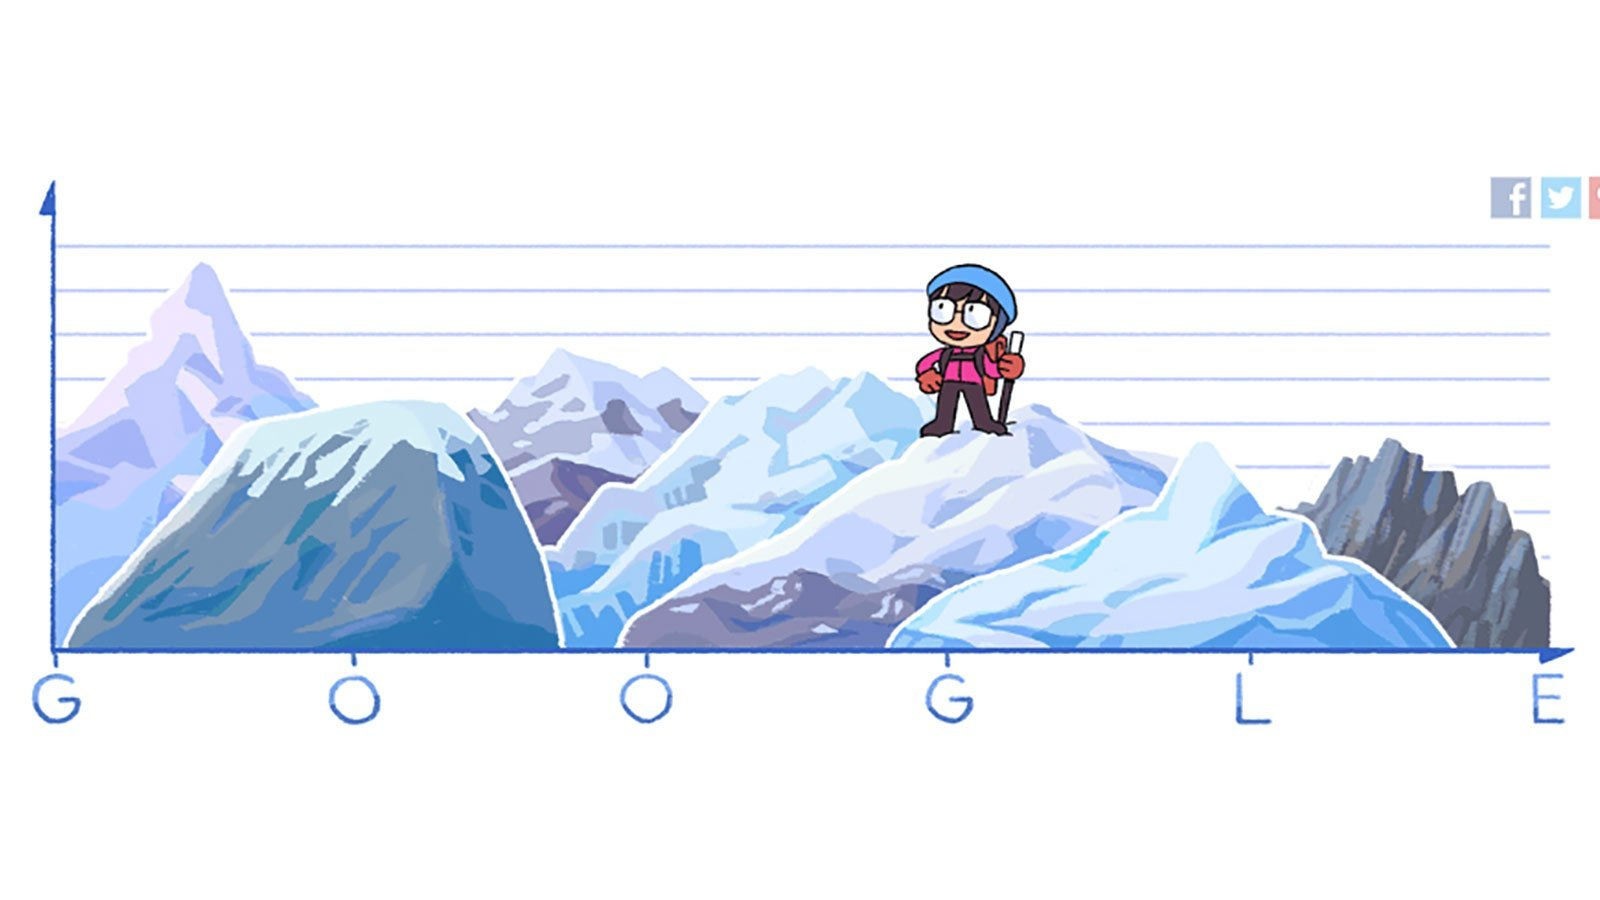 Google Doodle honors Junko Tabei, first woman to climb Mount Everest